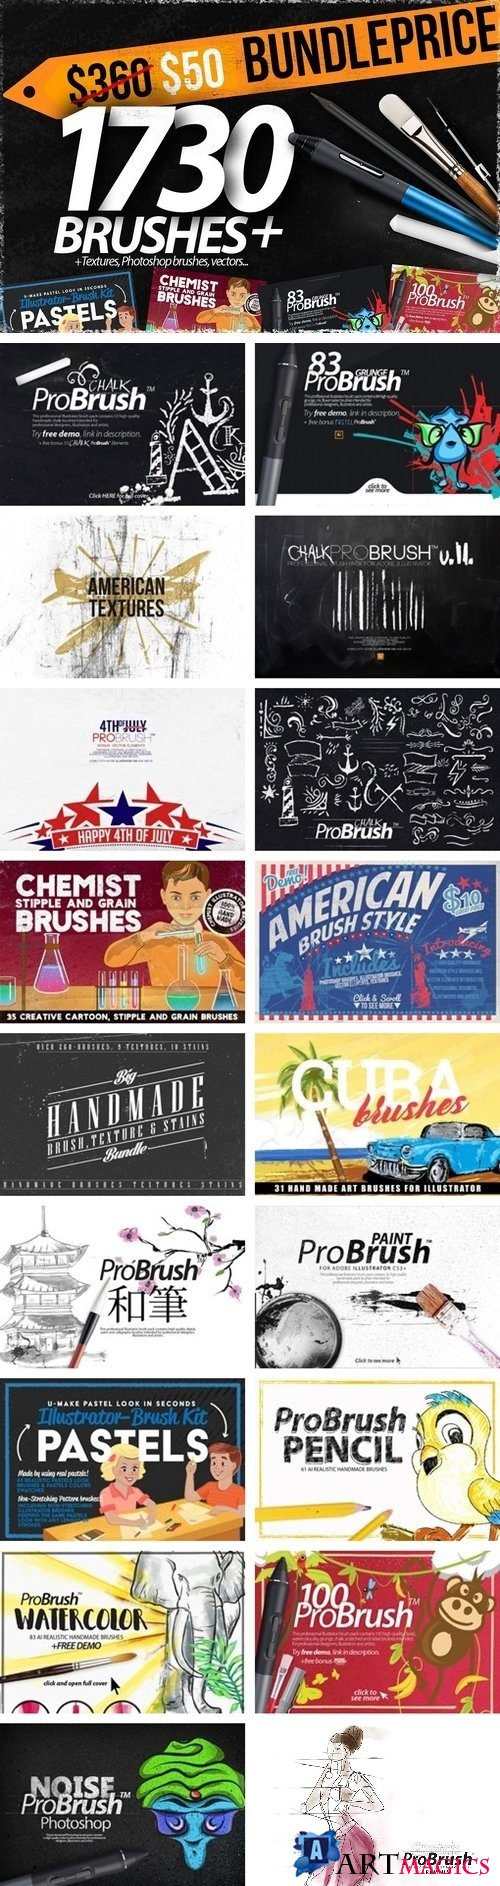 1730+ Brushes BIG BUNDLE 2079278